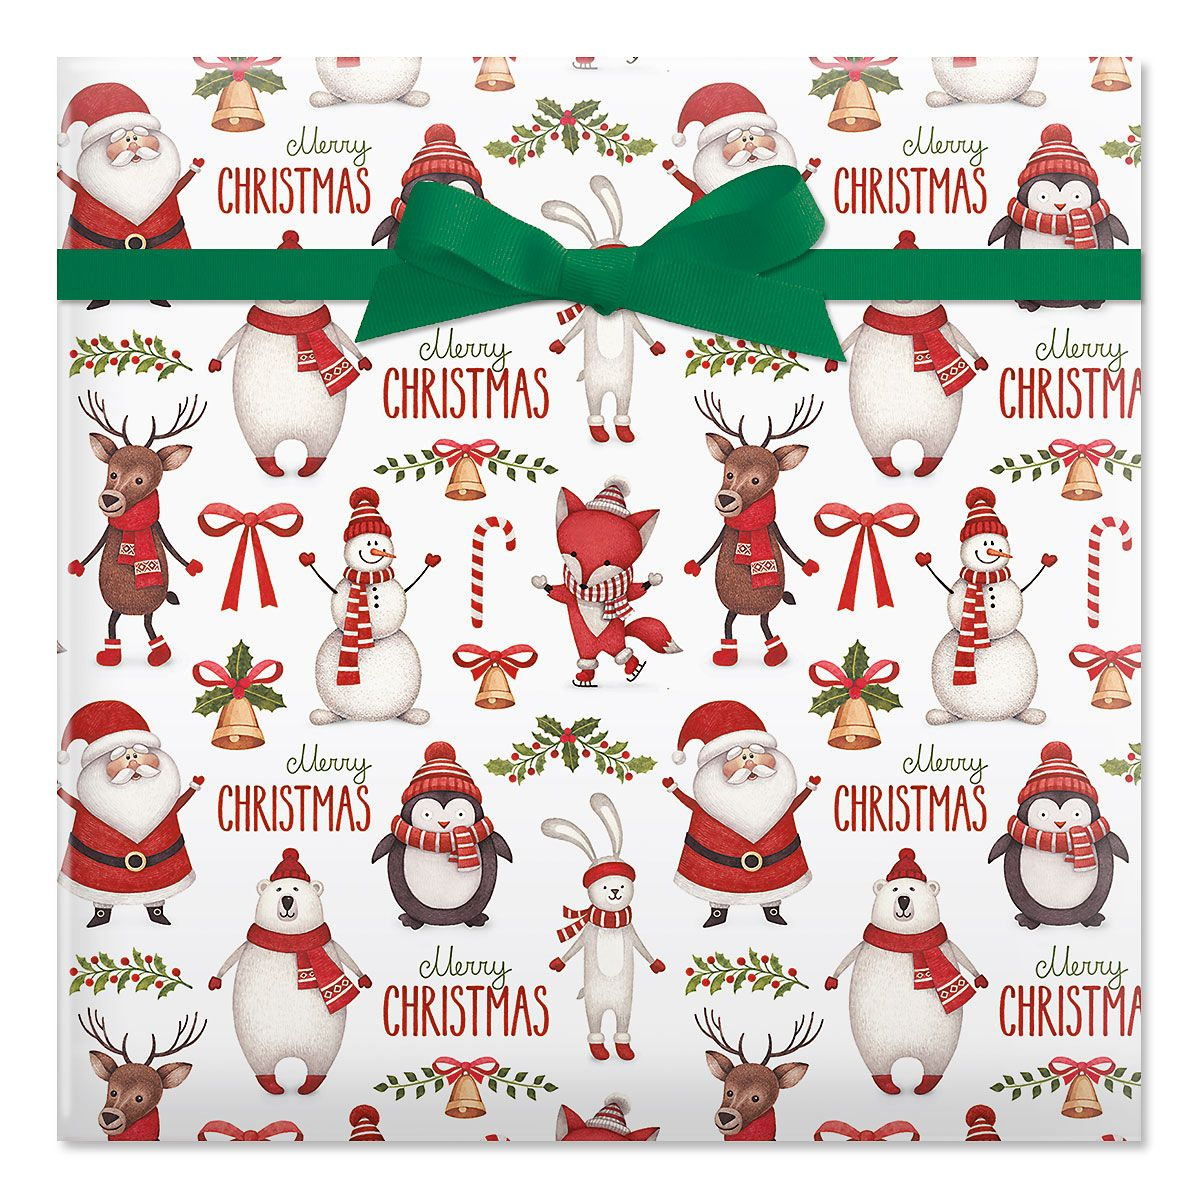 Winter Friends Jumbo Rolled Gift Wrap and Labels